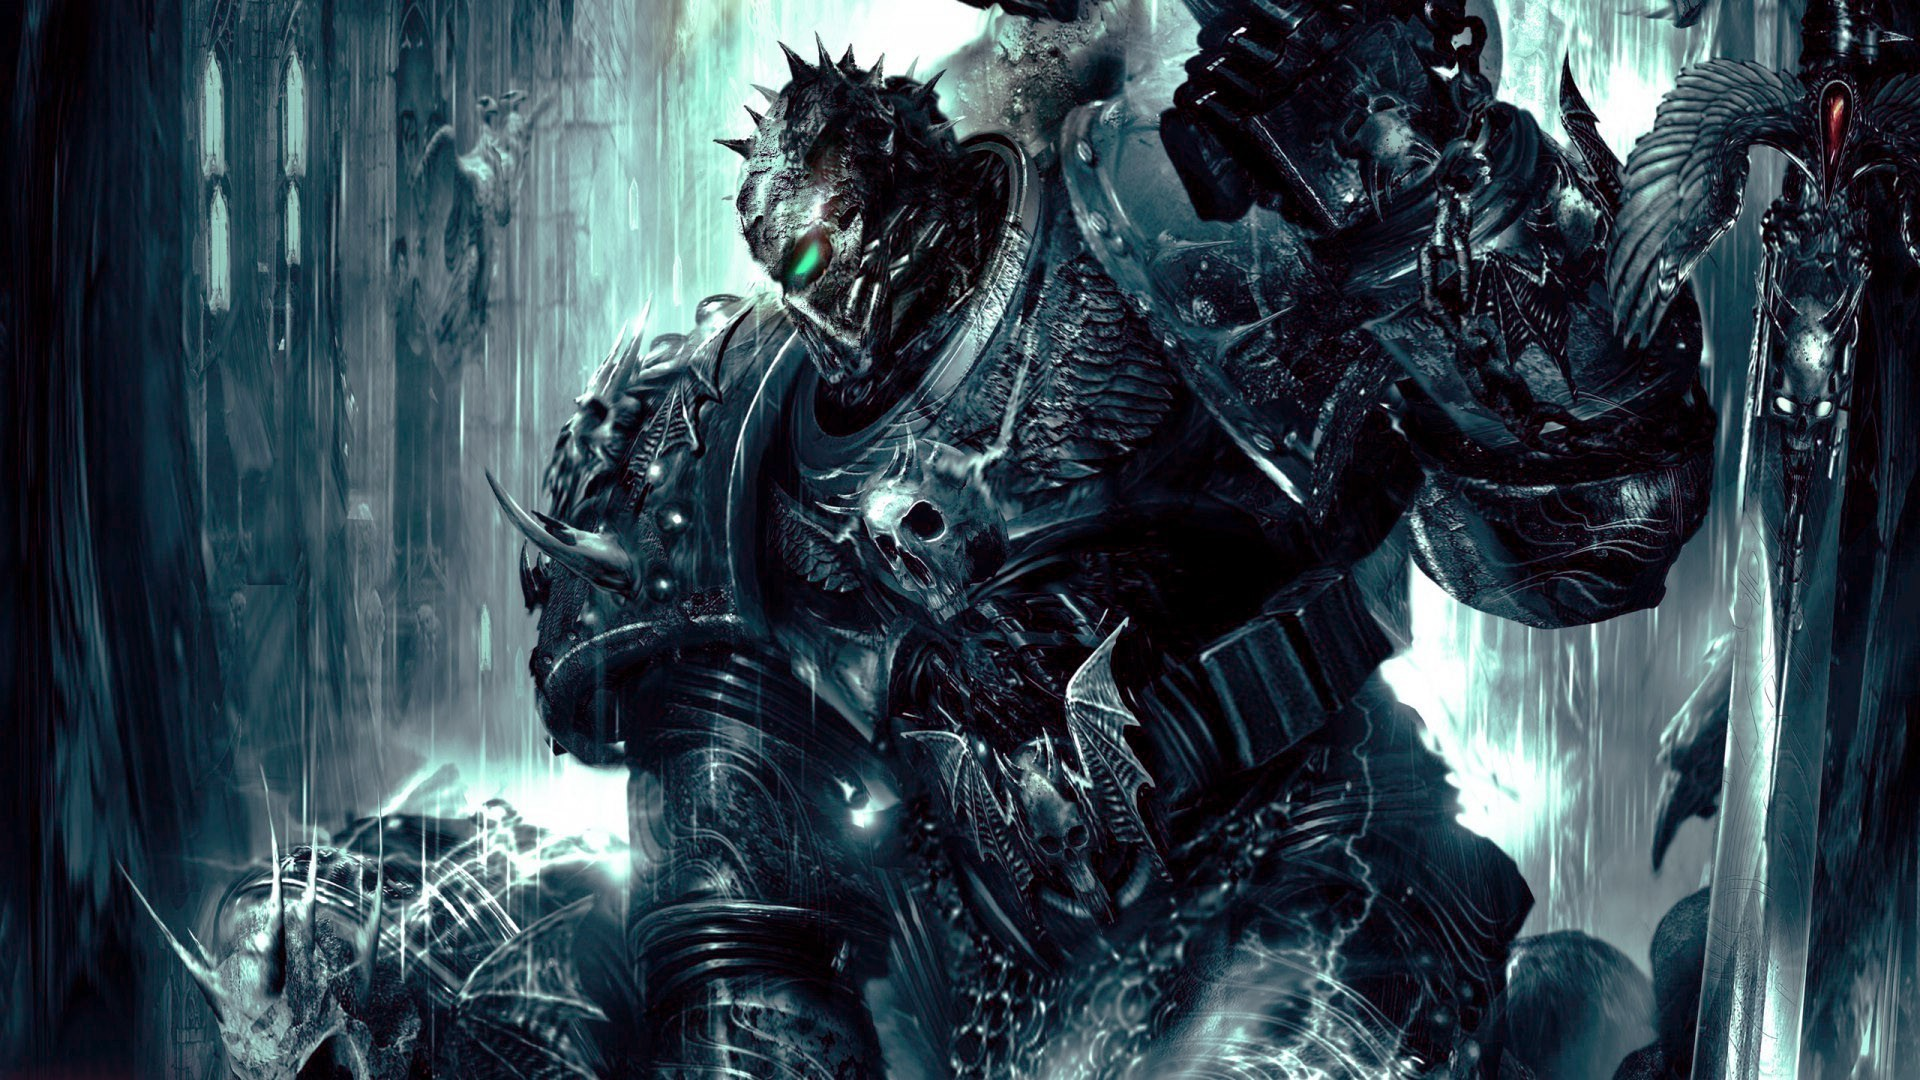 Res: 1920x1080, chaos space marine warhammer 40 000 dawn of war 2 soul hunter creature  chaos wallpaper and background